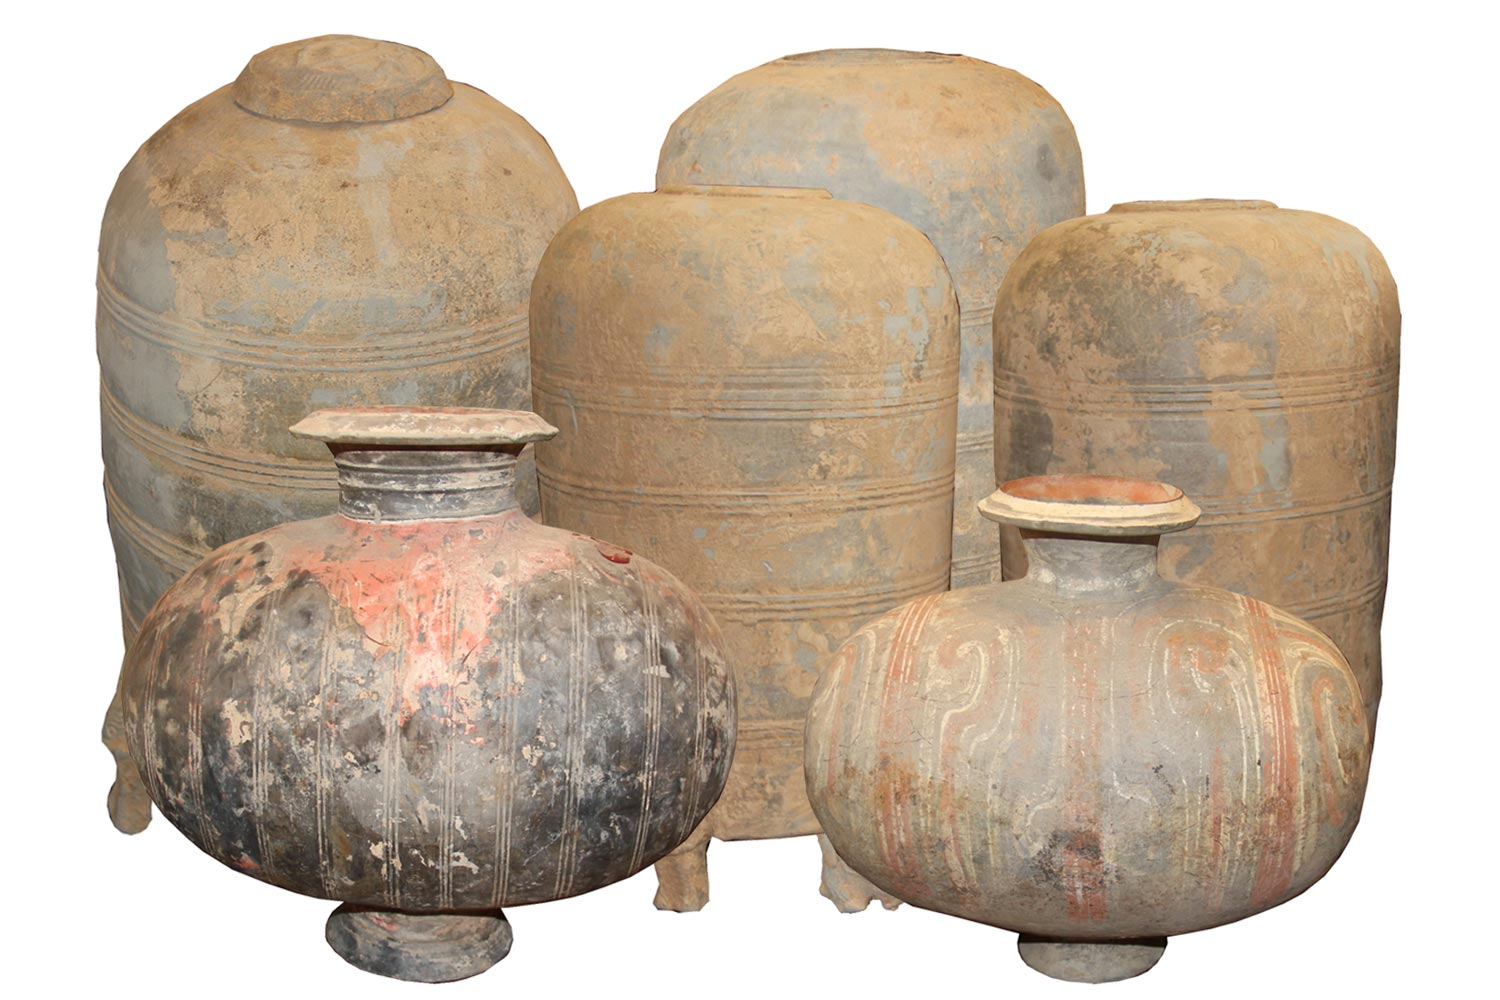 A Collection of Six Chinese Han Dynasty Earthenware Jars No. 4500